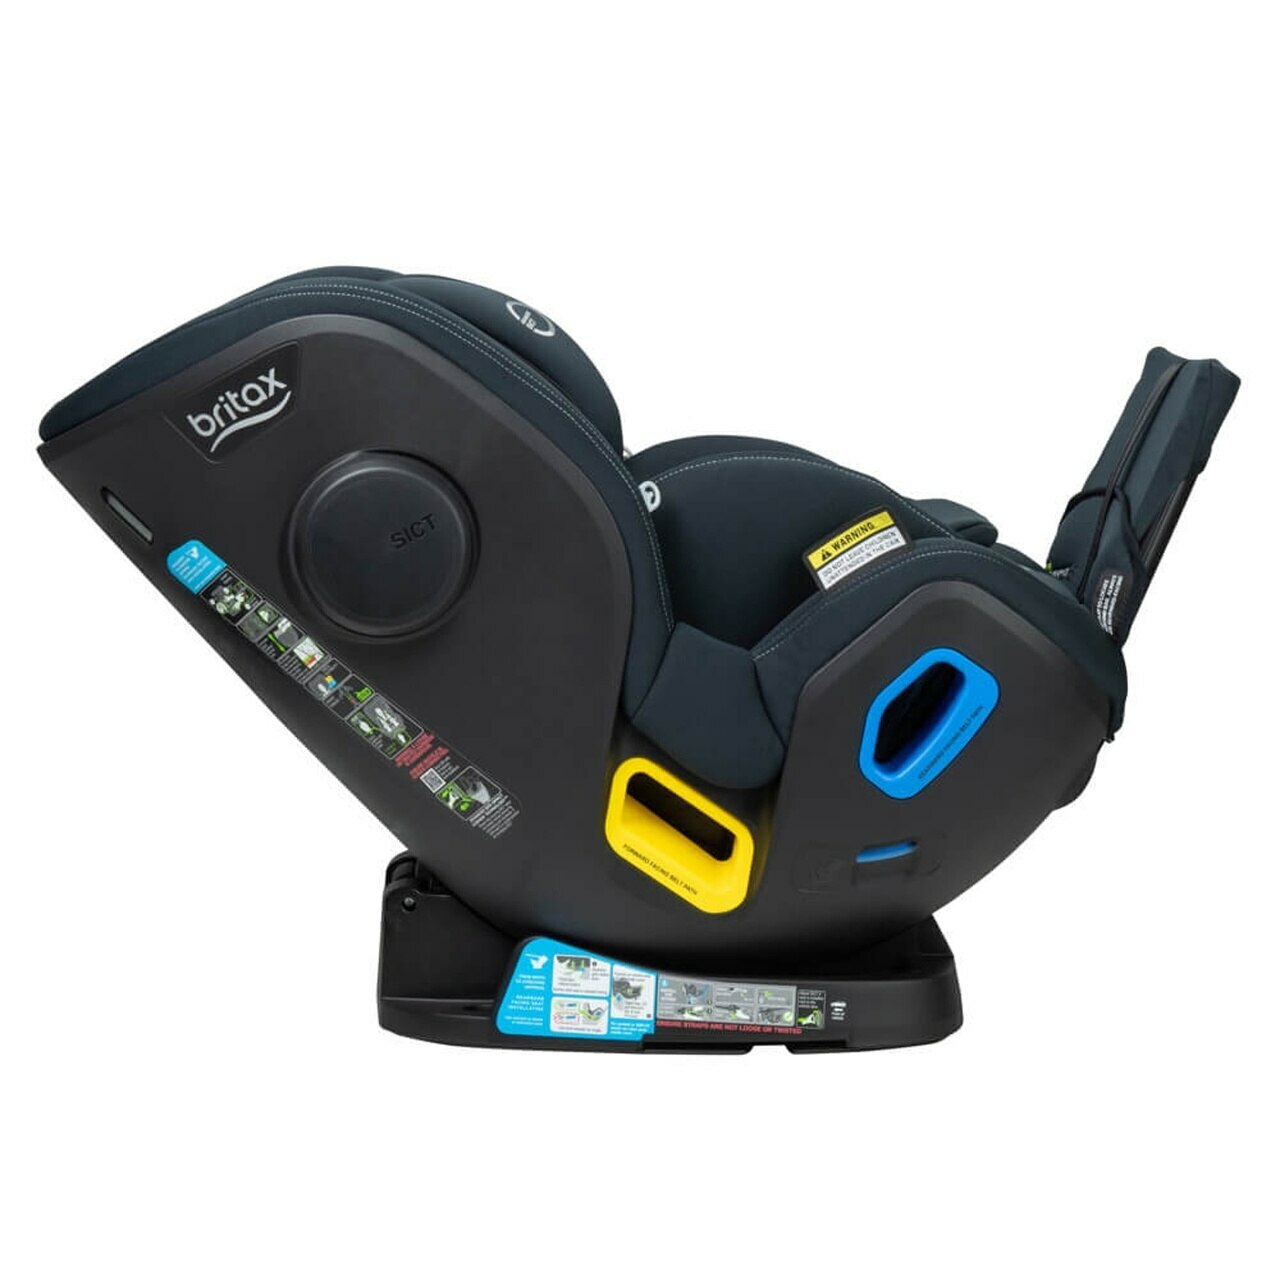 b first ifix has the latest isofix seat in new generation range with rearward facing level indicator